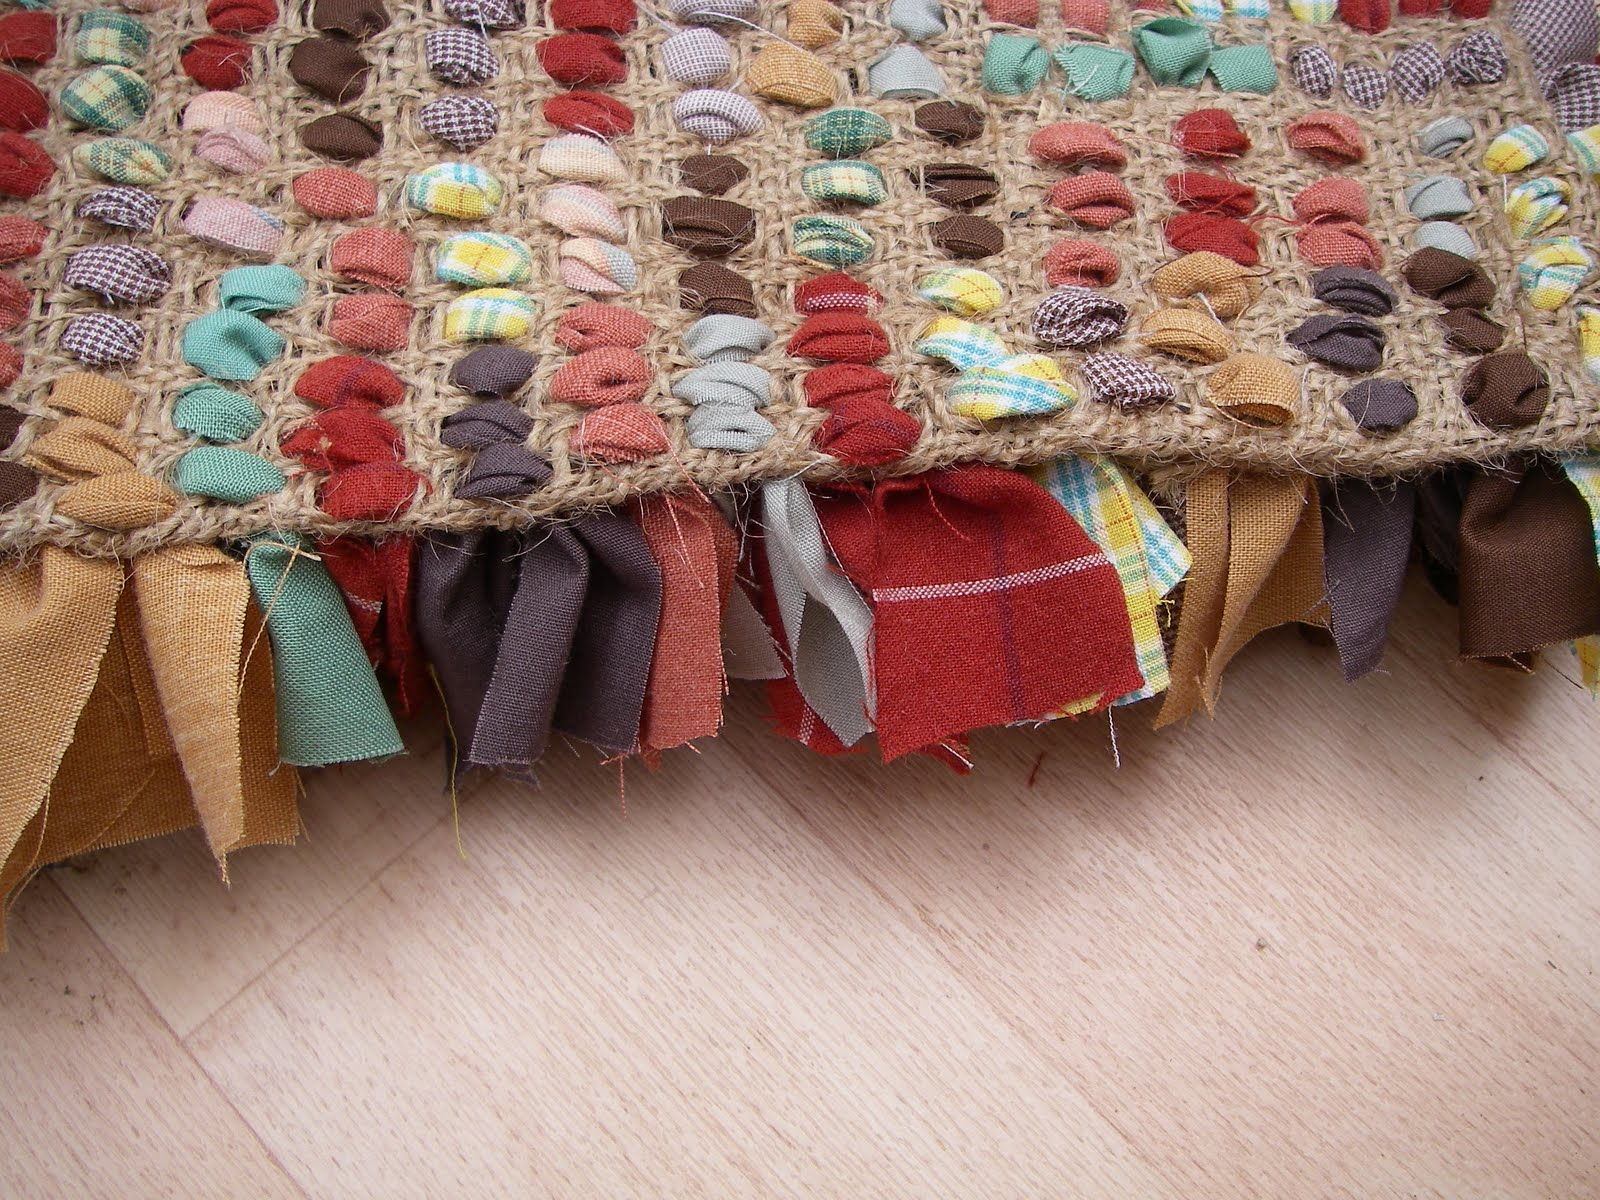 Fabric Rug Making Stitchin The Day Away Rag Rug Tutorial